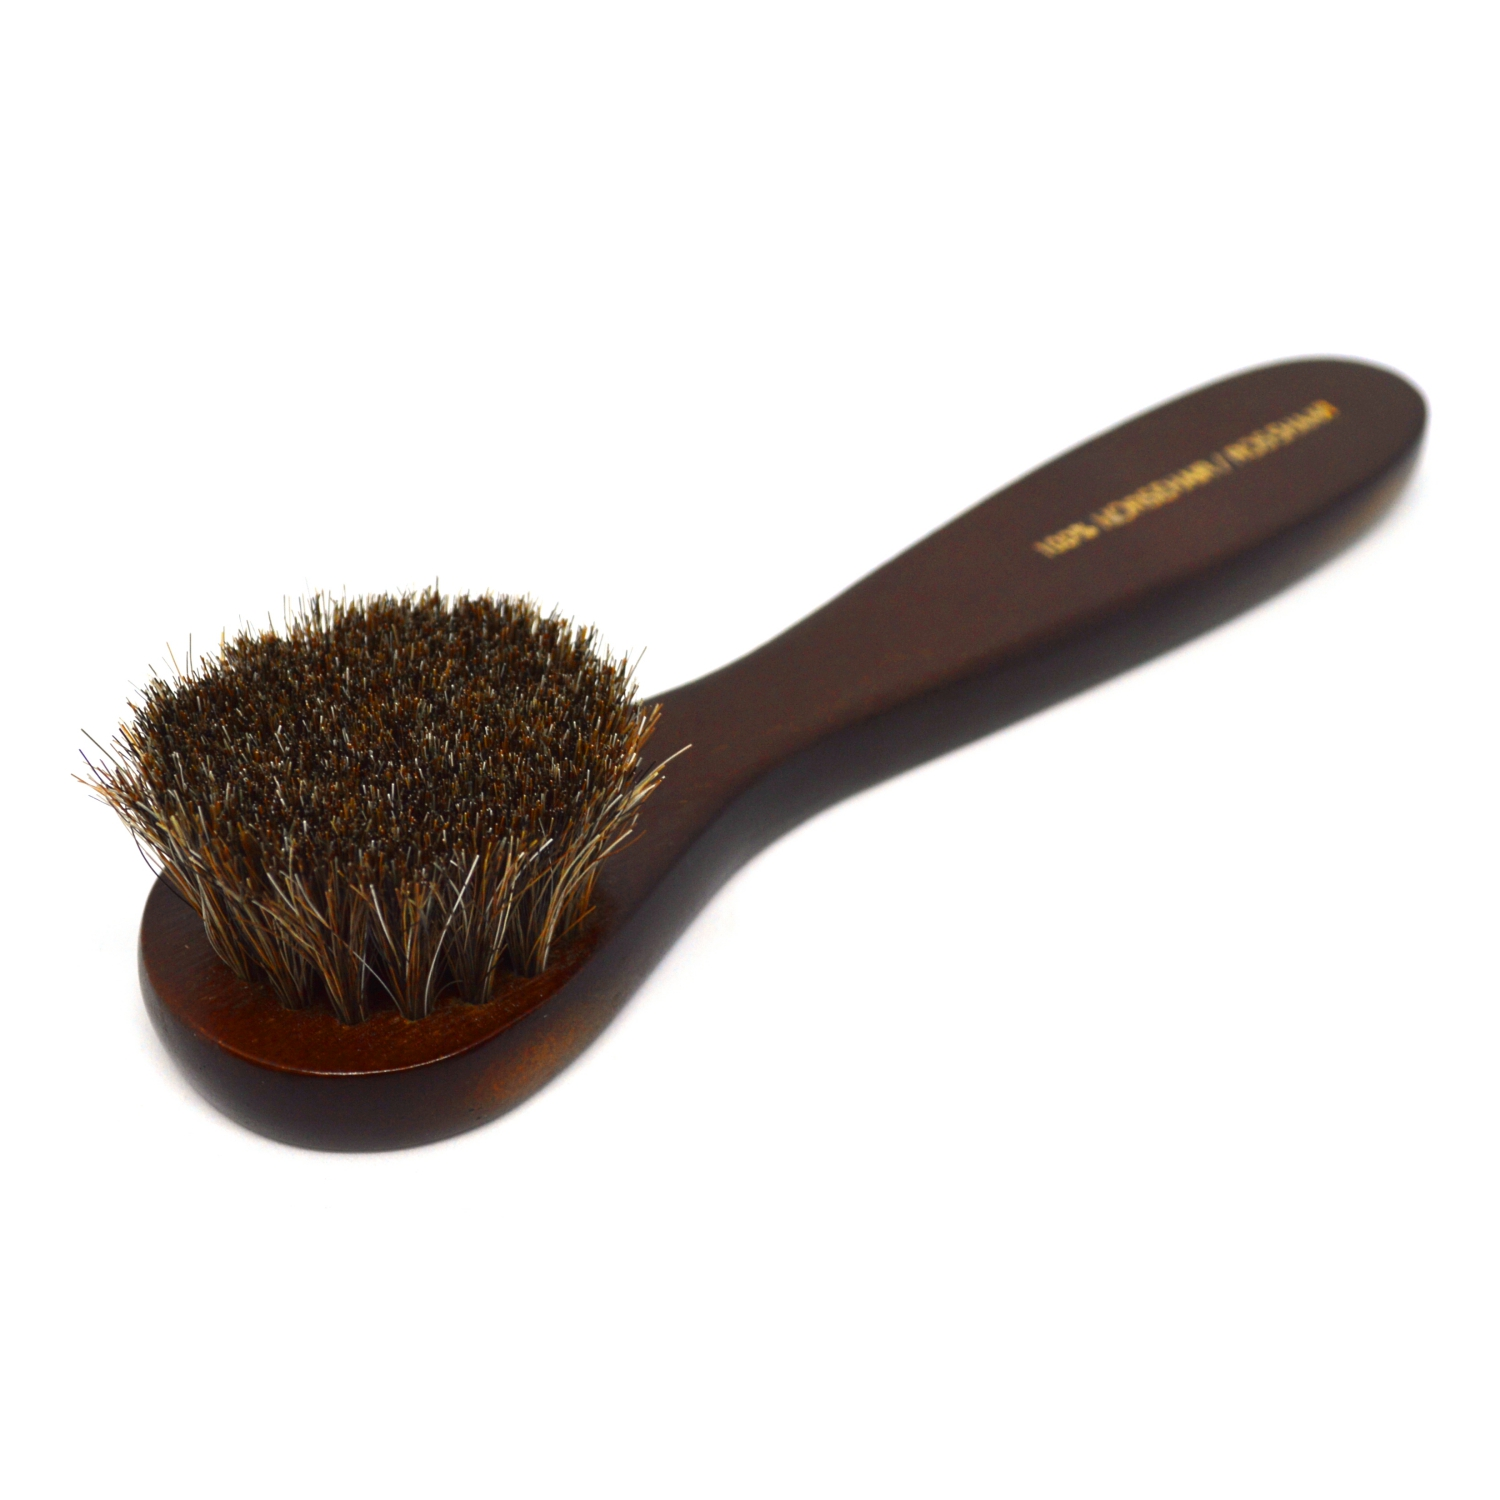 Horsehair Shoe Polish Dauber Brush bristles